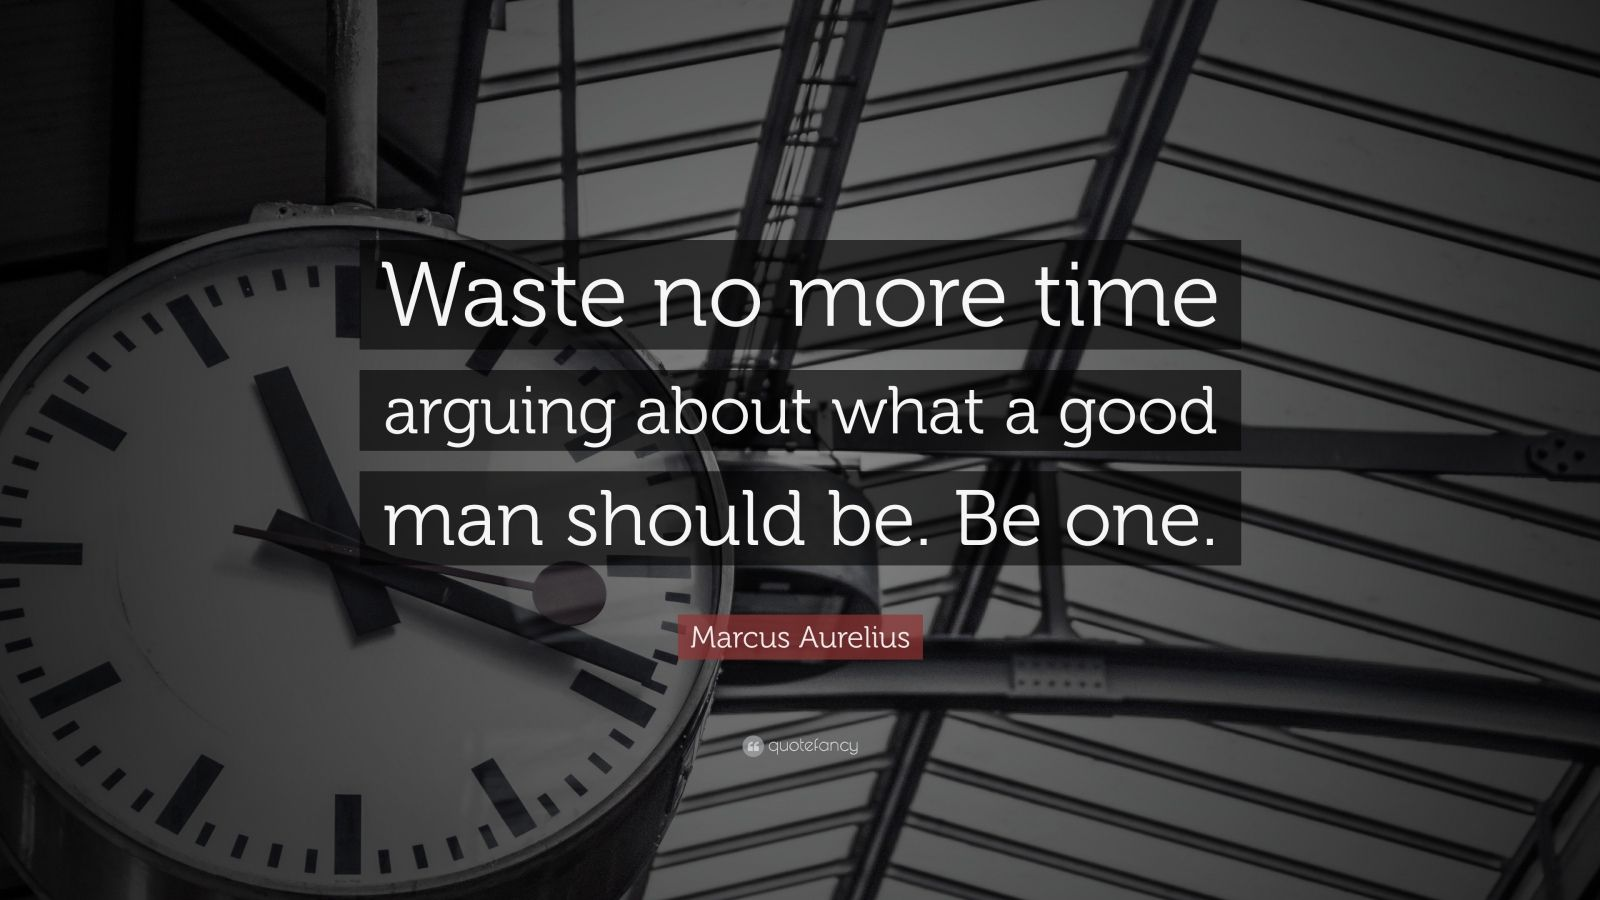 Be More About What Waste Marcus Man Be Should Good No Aurelius Time One Arguing